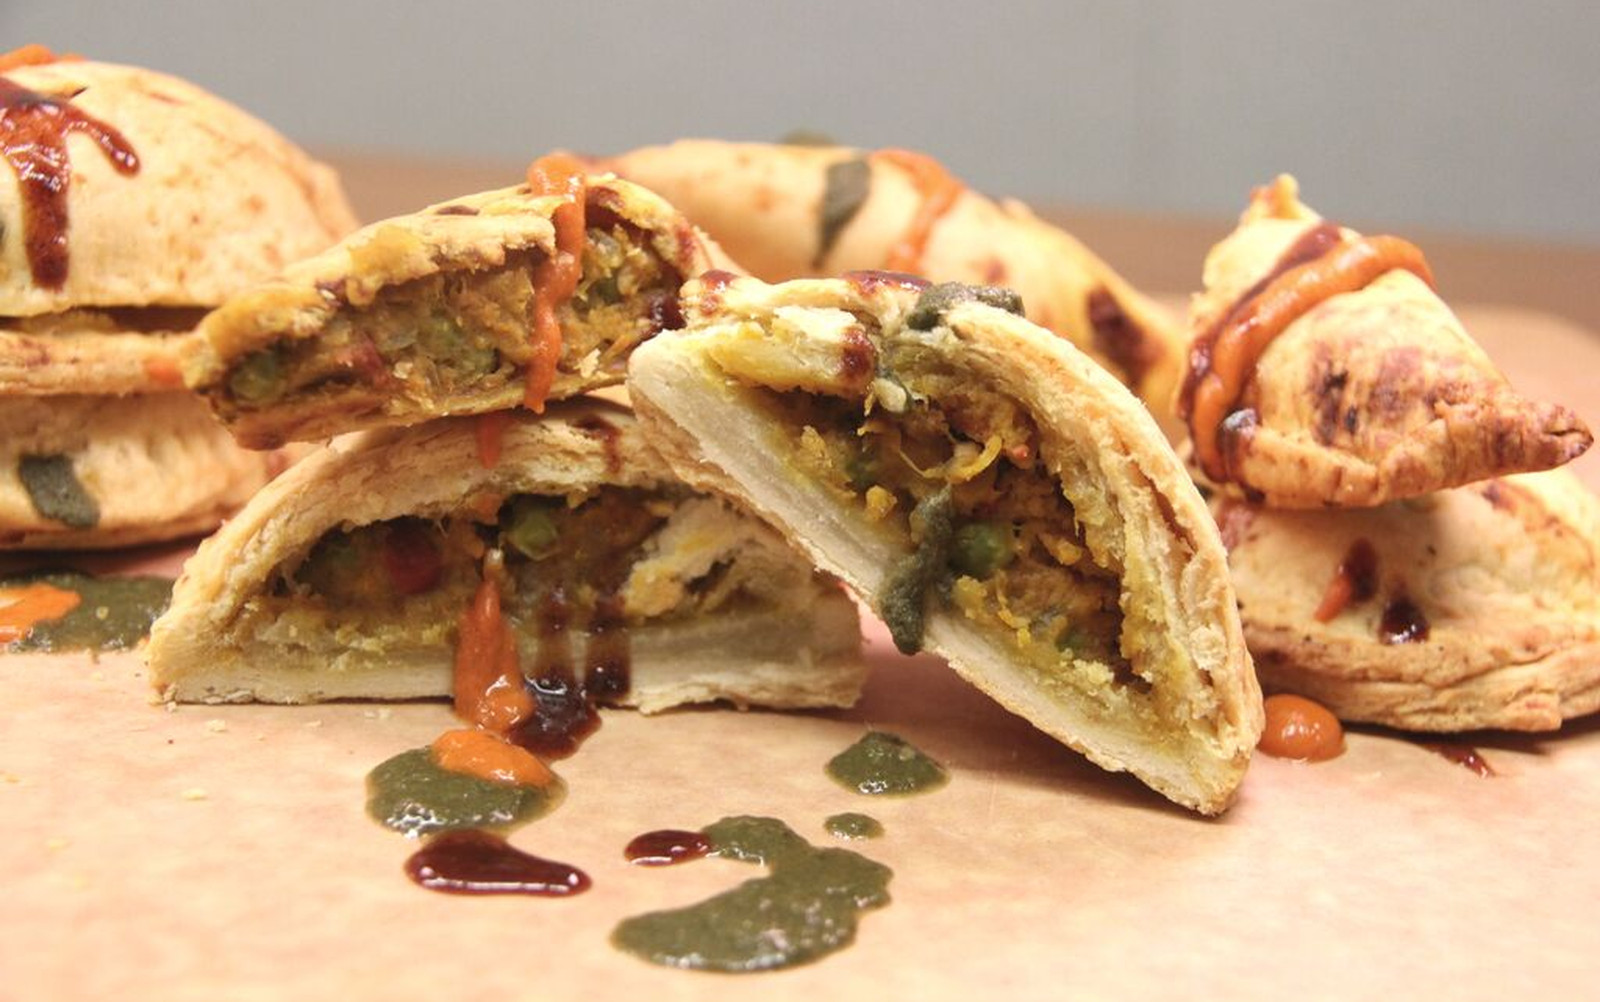 #5under5: 'Samosanadas' (Seasonal Pumpkin Samosa Empanadas) [Vegan]